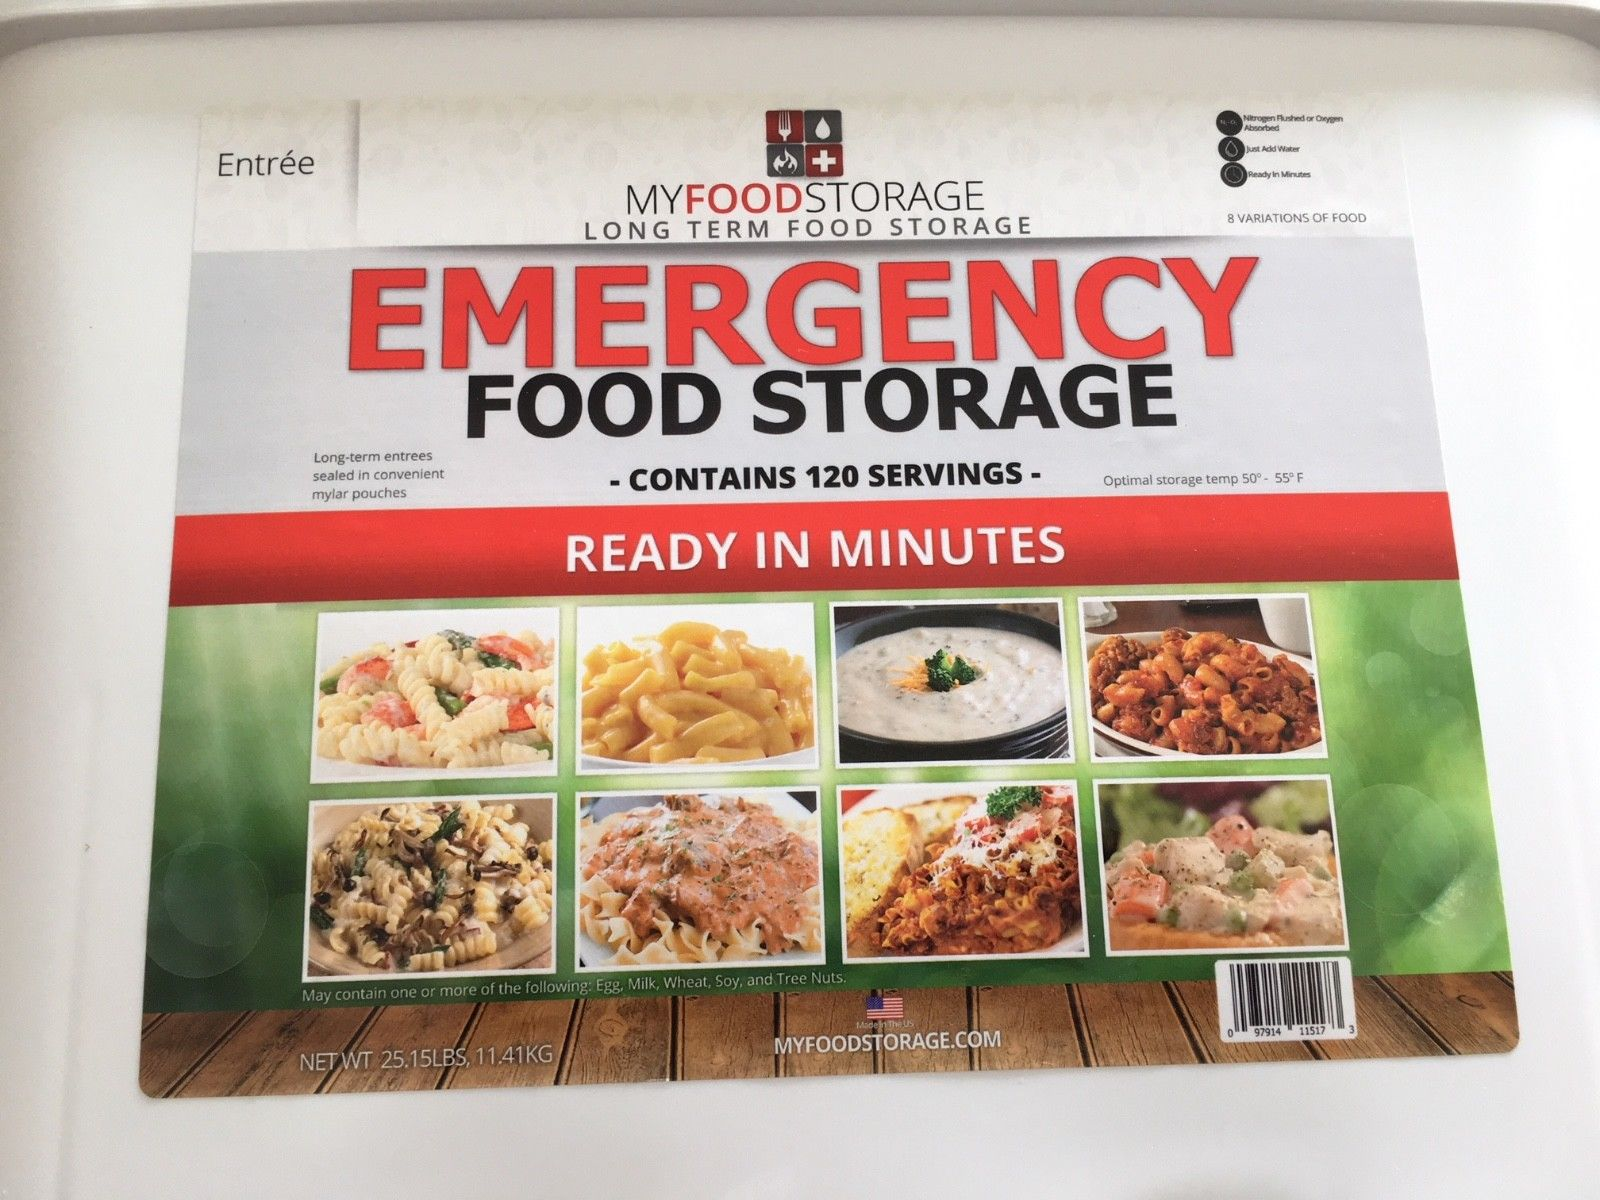 Emergency Food Supply: My Food Storage [brand], Dinner Entrees, 120 Servings 1